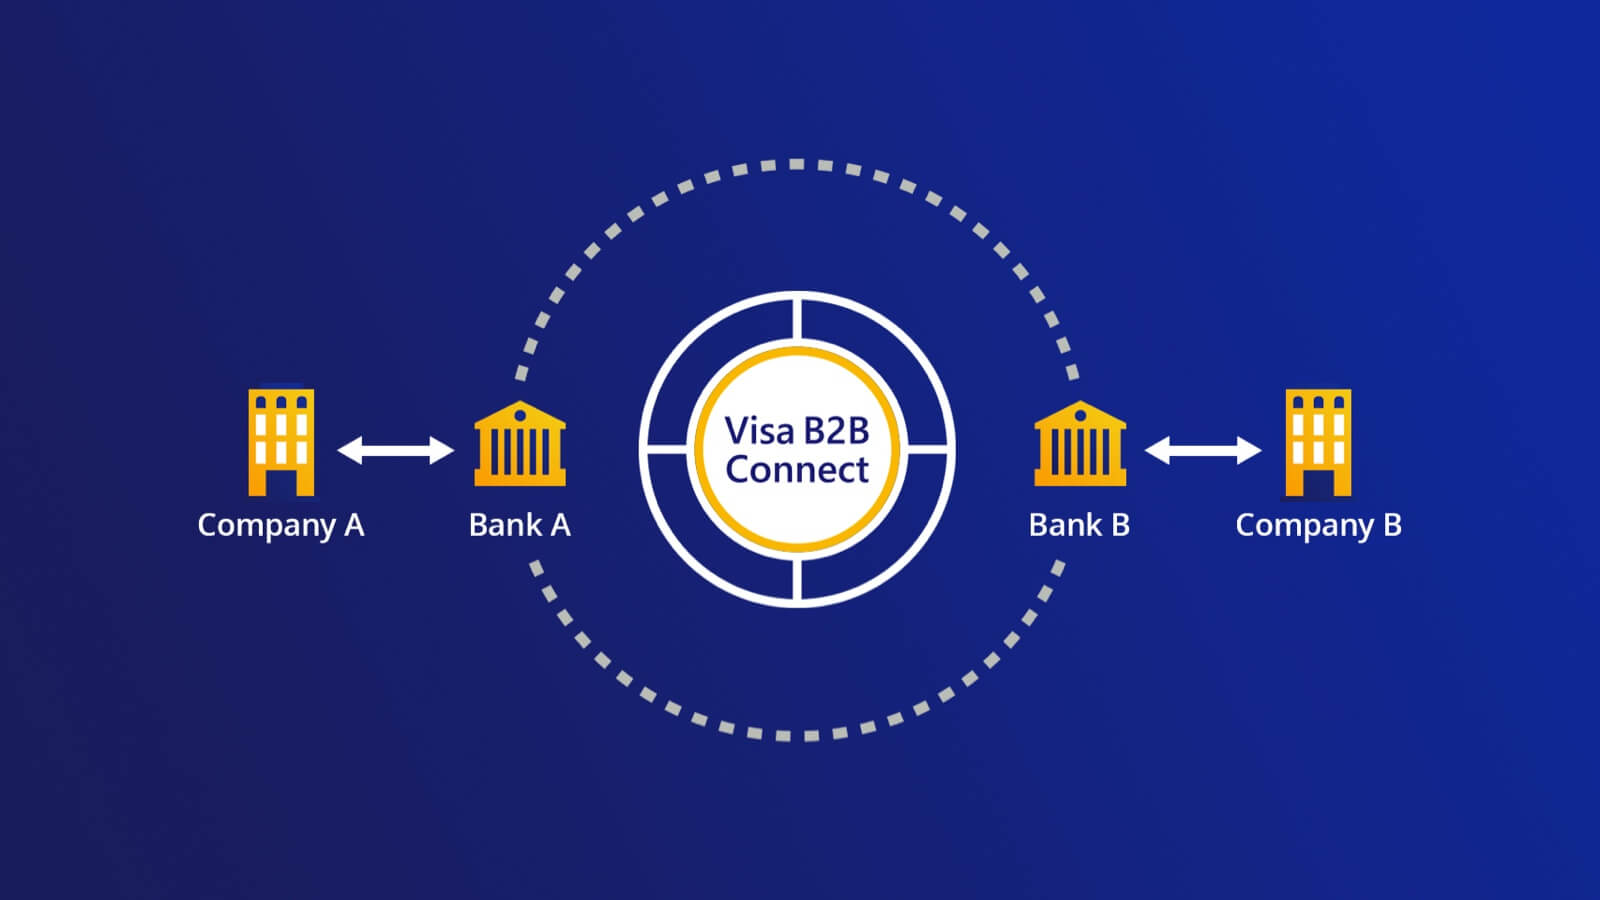 Illustration of Visa B2B Connect cross-border payment. See the Image Description link following the image for more details.